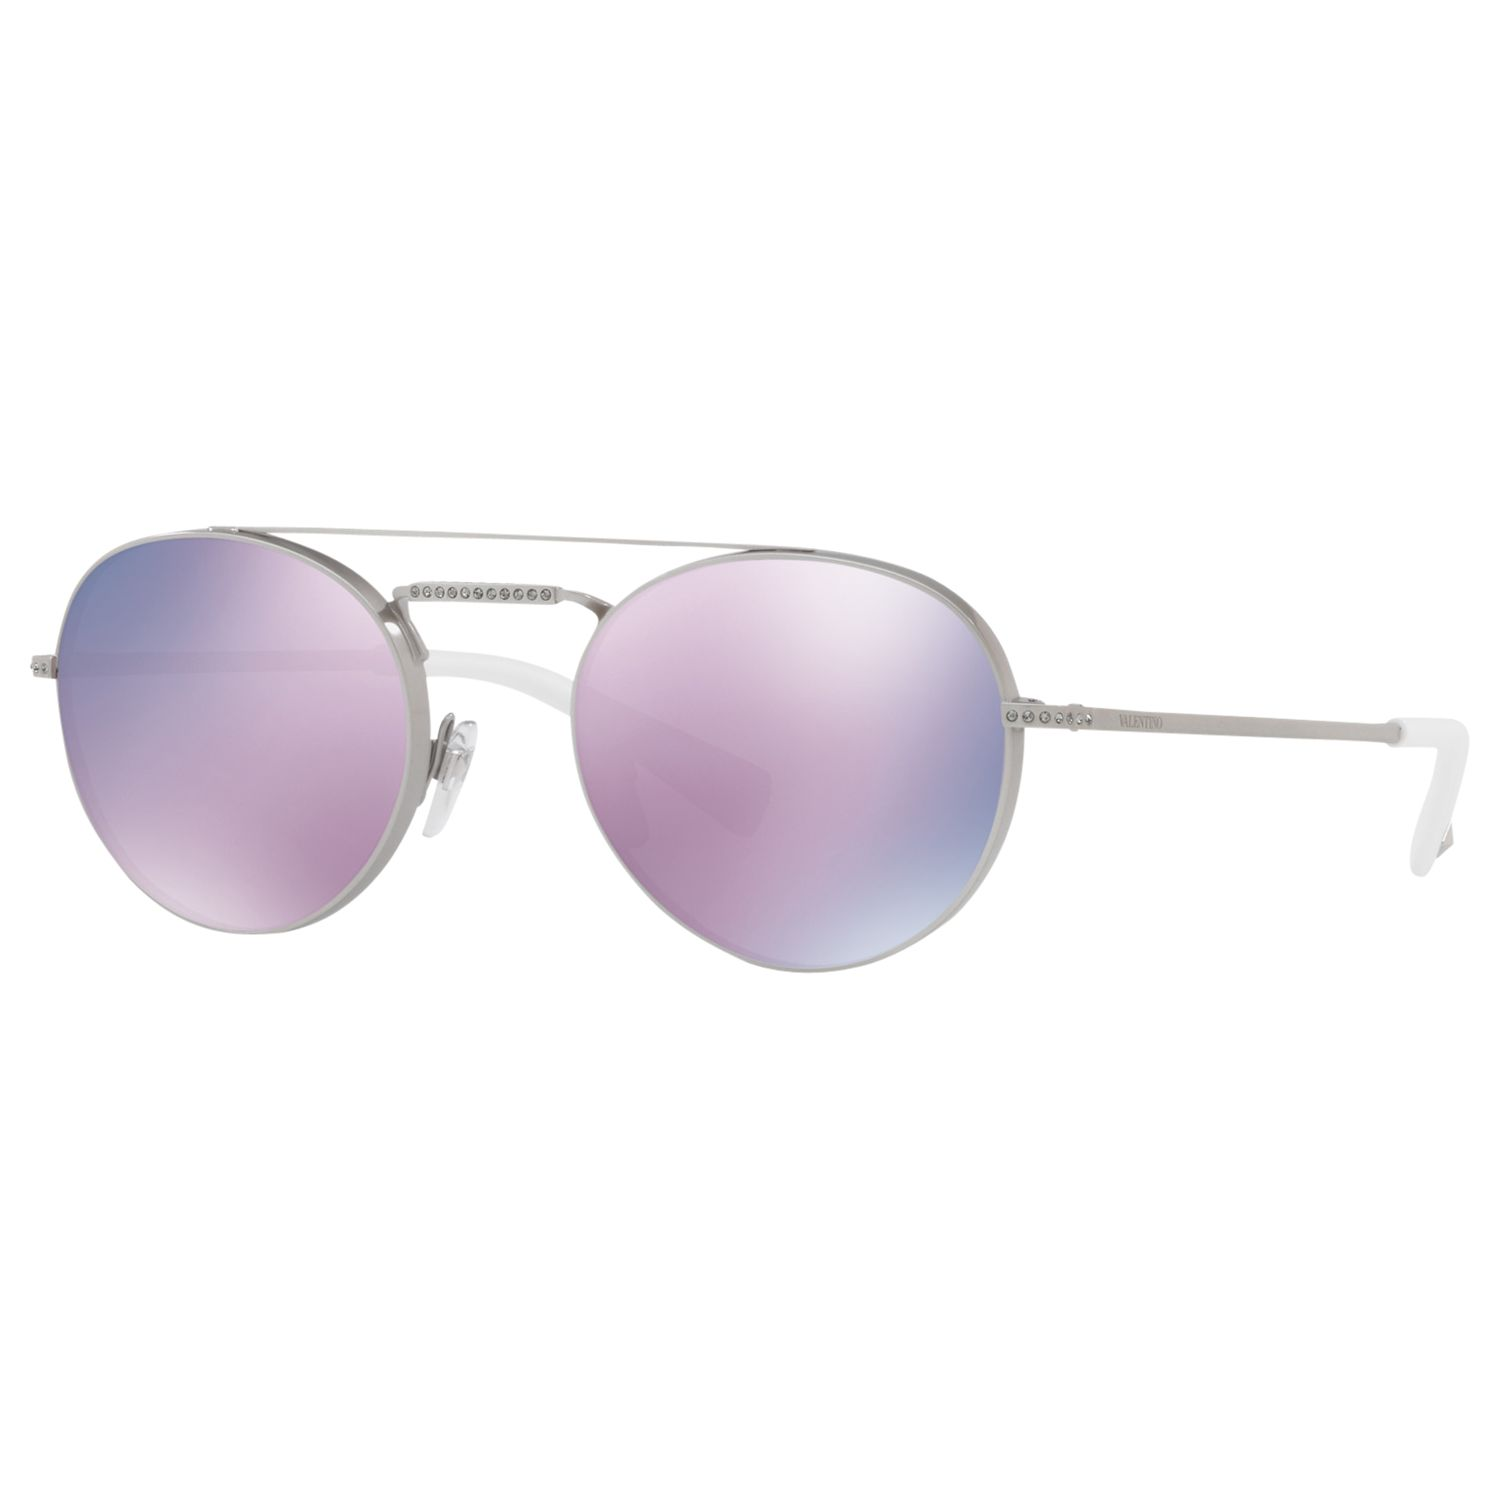 Valentino Valentino VA2004B Double Bridge Oval Sunglasses, Silver/Mirror Lilac